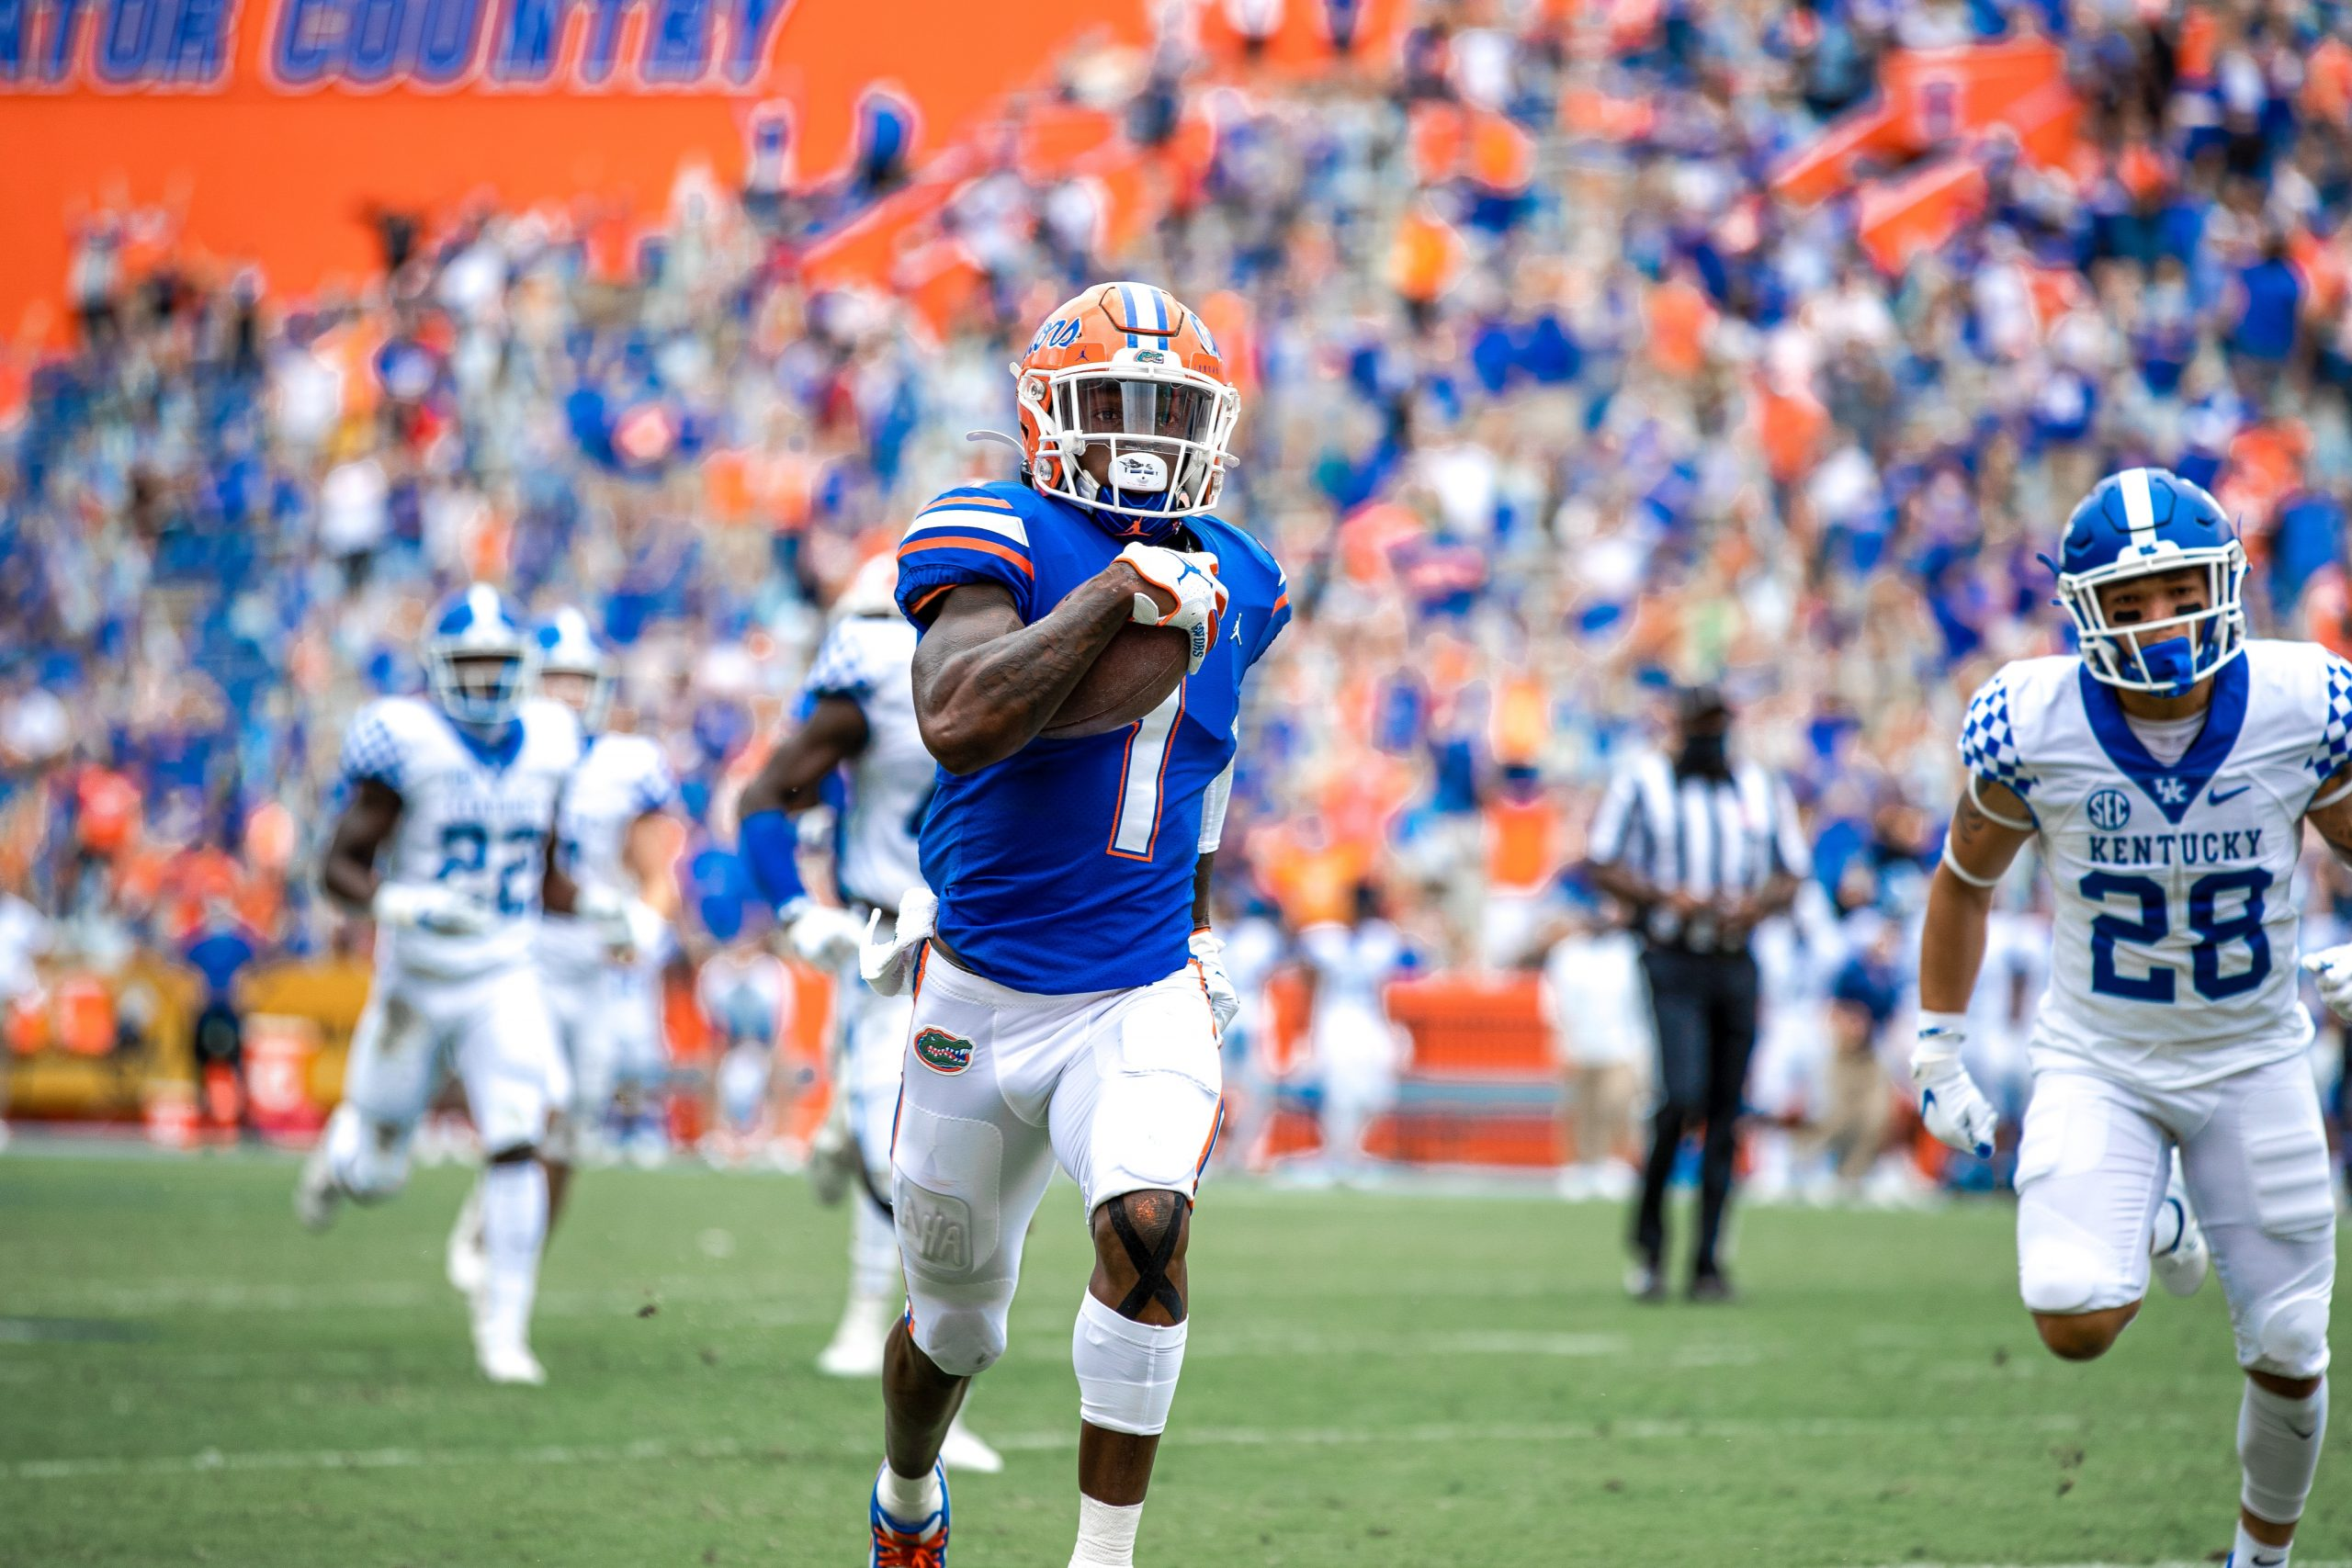 Florida Gators bate Kentucky Wildcats em confronto da SEC no college football